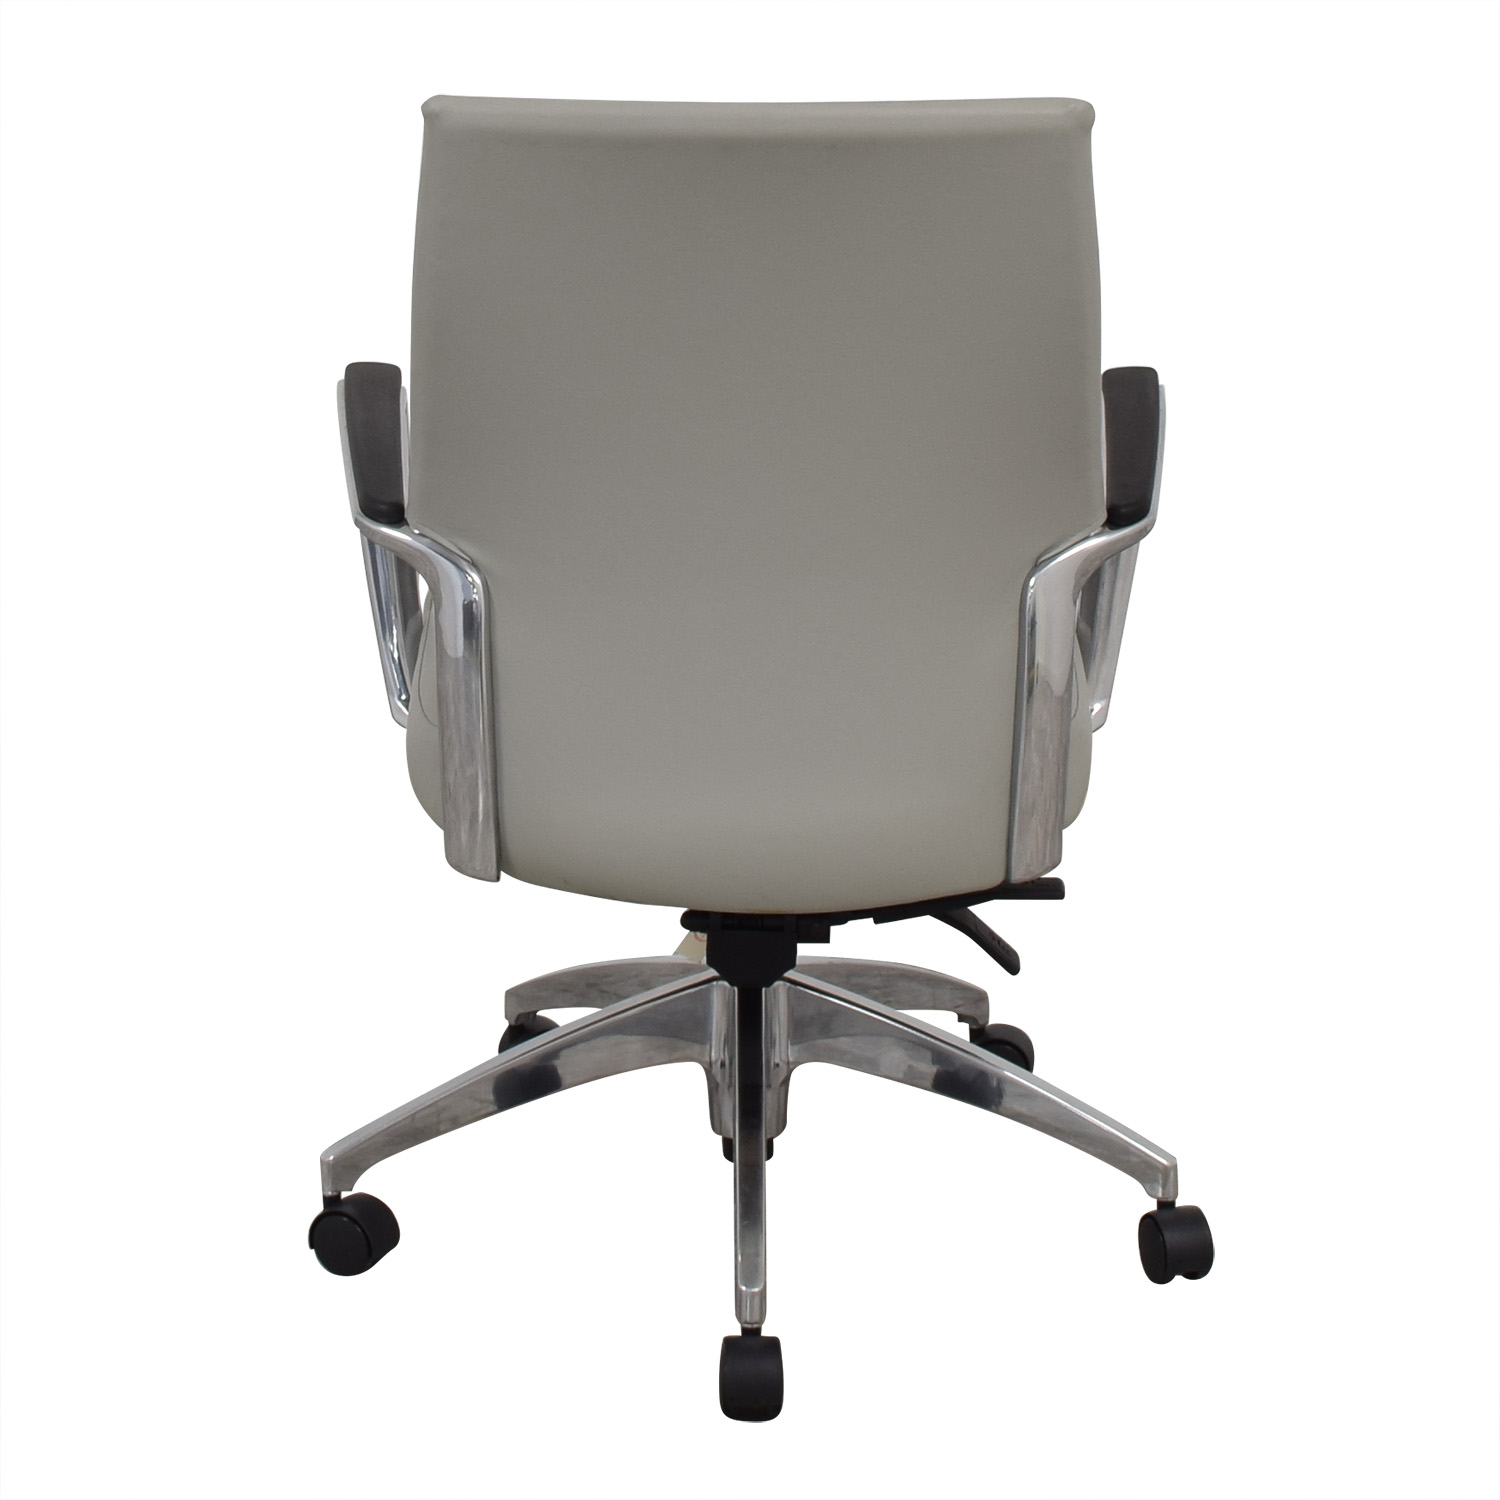 Global Global Accord Medium Back Tilter Chair dimensions